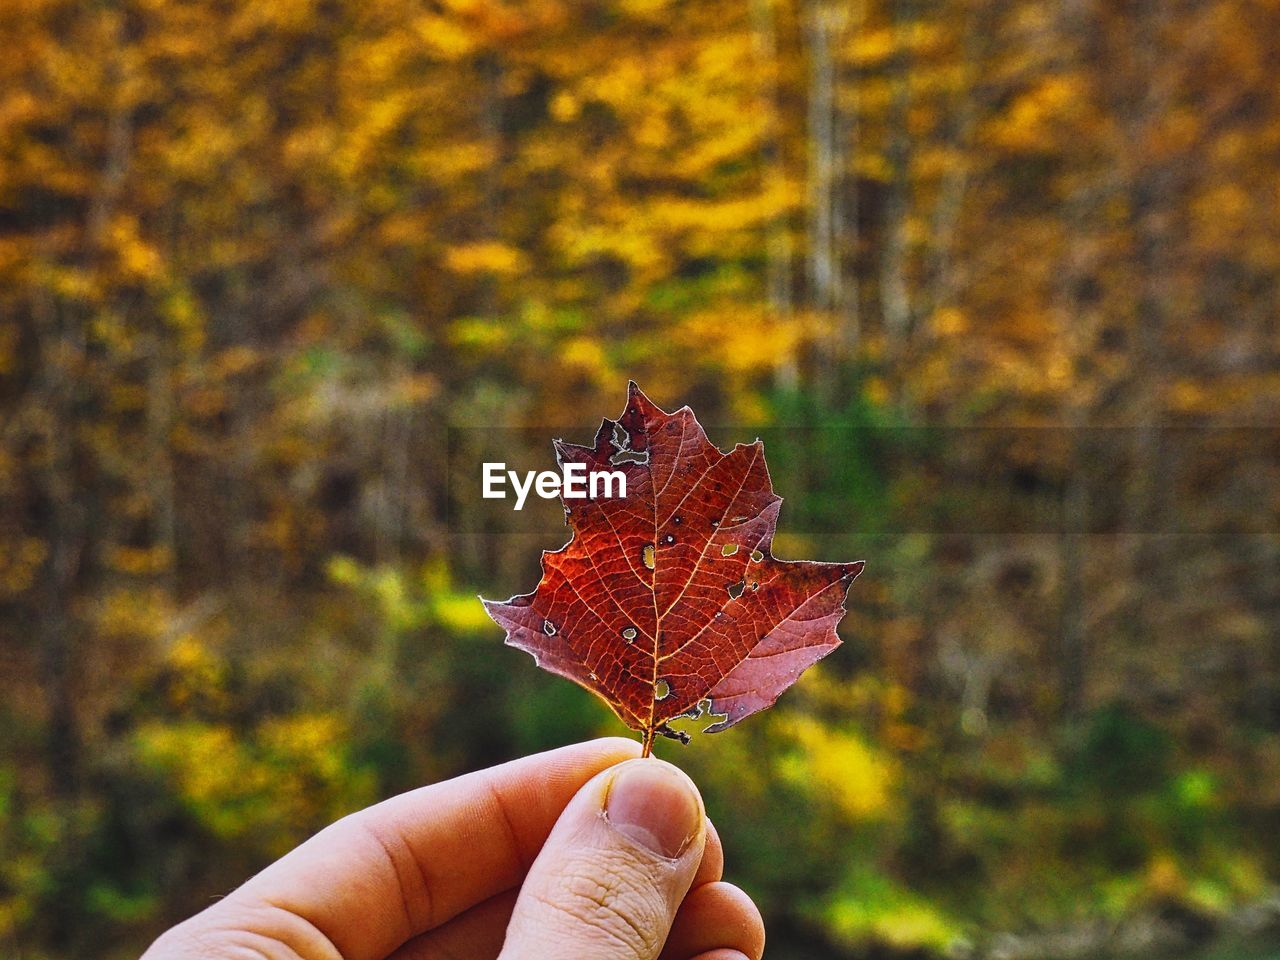 human hand, hand, human body part, autumn, leaf, plant part, one person, real people, holding, finger, change, human finger, unrecognizable person, focus on foreground, body part, lifestyles, close-up, nature, personal perspective, day, maple leaf, outdoors, autumn collection, leaves, natural condition, fall, human limb